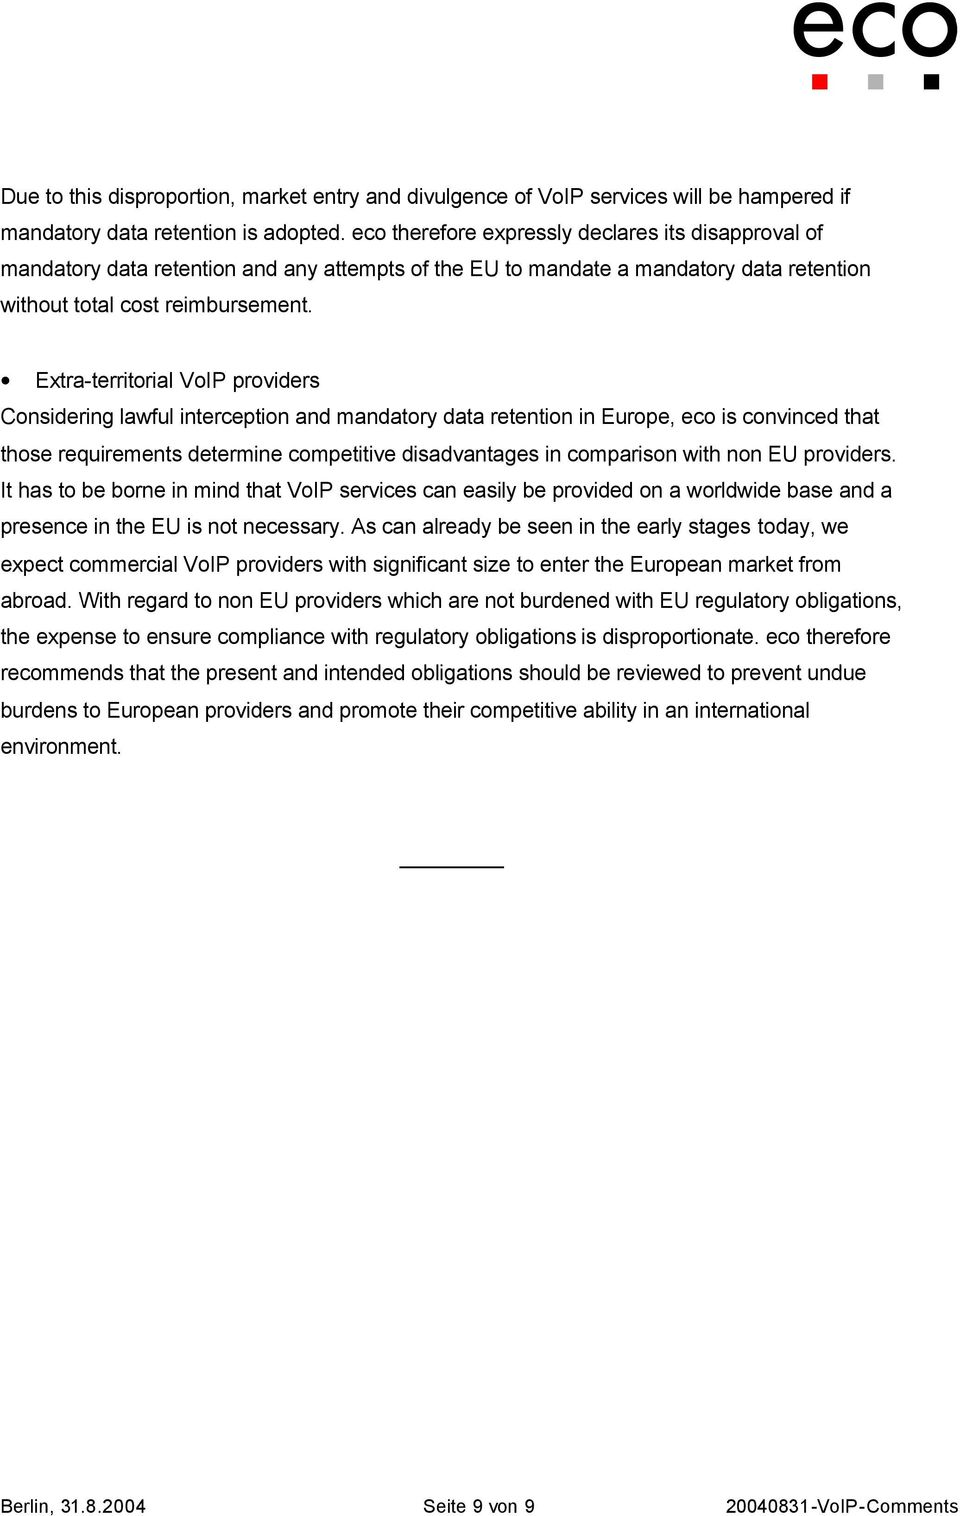 Extra-territorial VoIP providers Considering lawful interception and mandatory data retention in Europe, eco is convinced that those requirements determine competitive disadvantages in comparison